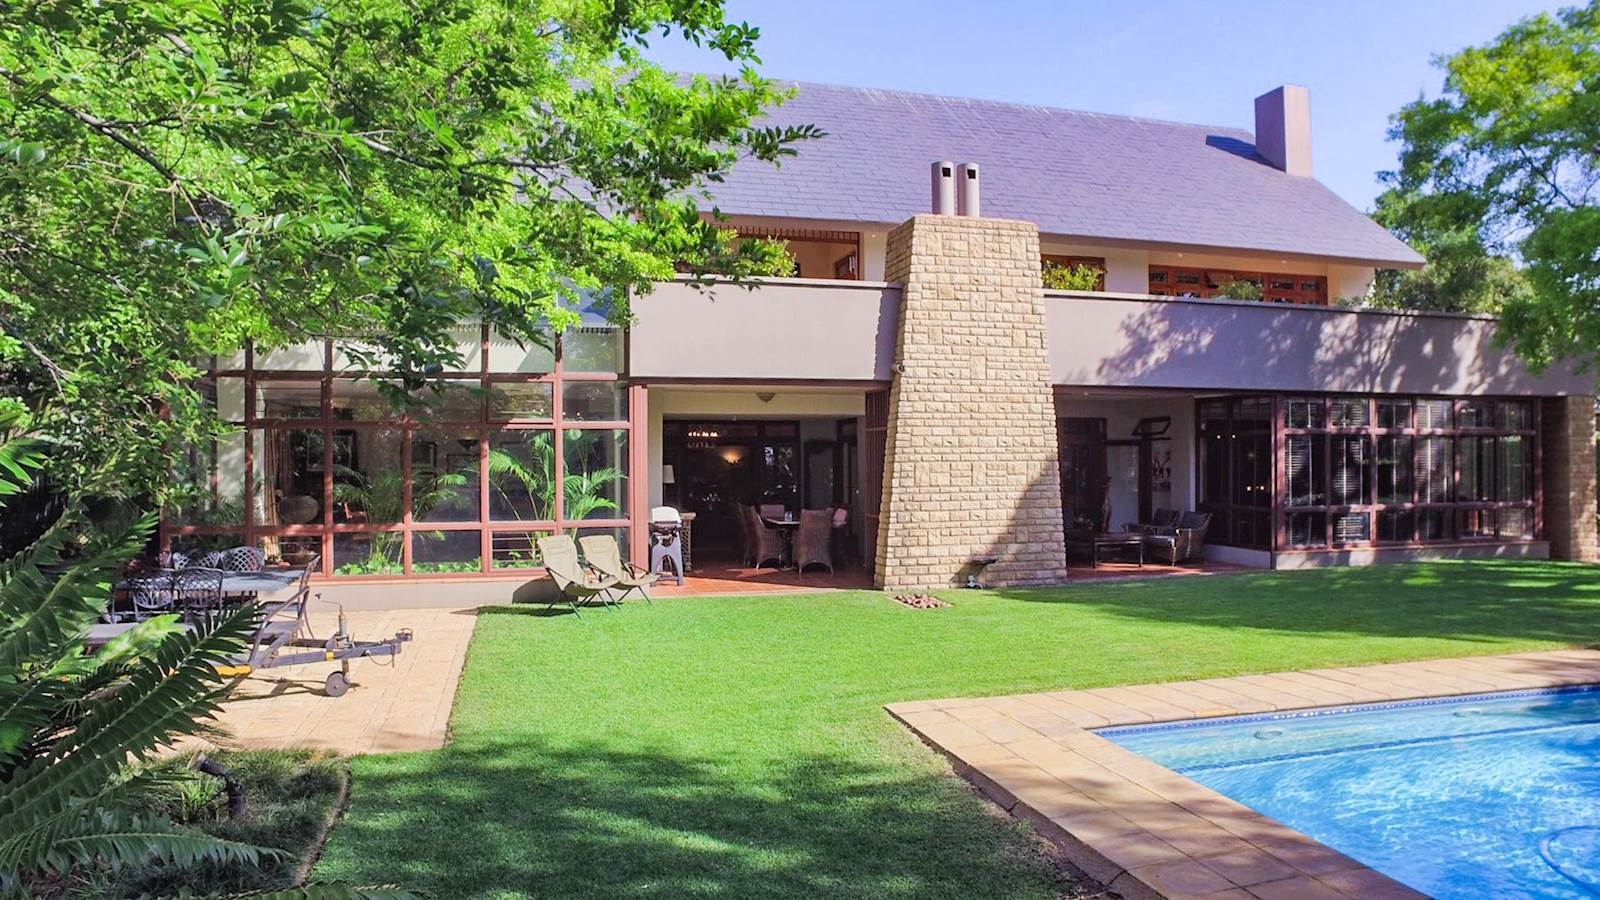 4 Bedroom House for sale in Waterkloof Ridge ENT0005736 : photo#1